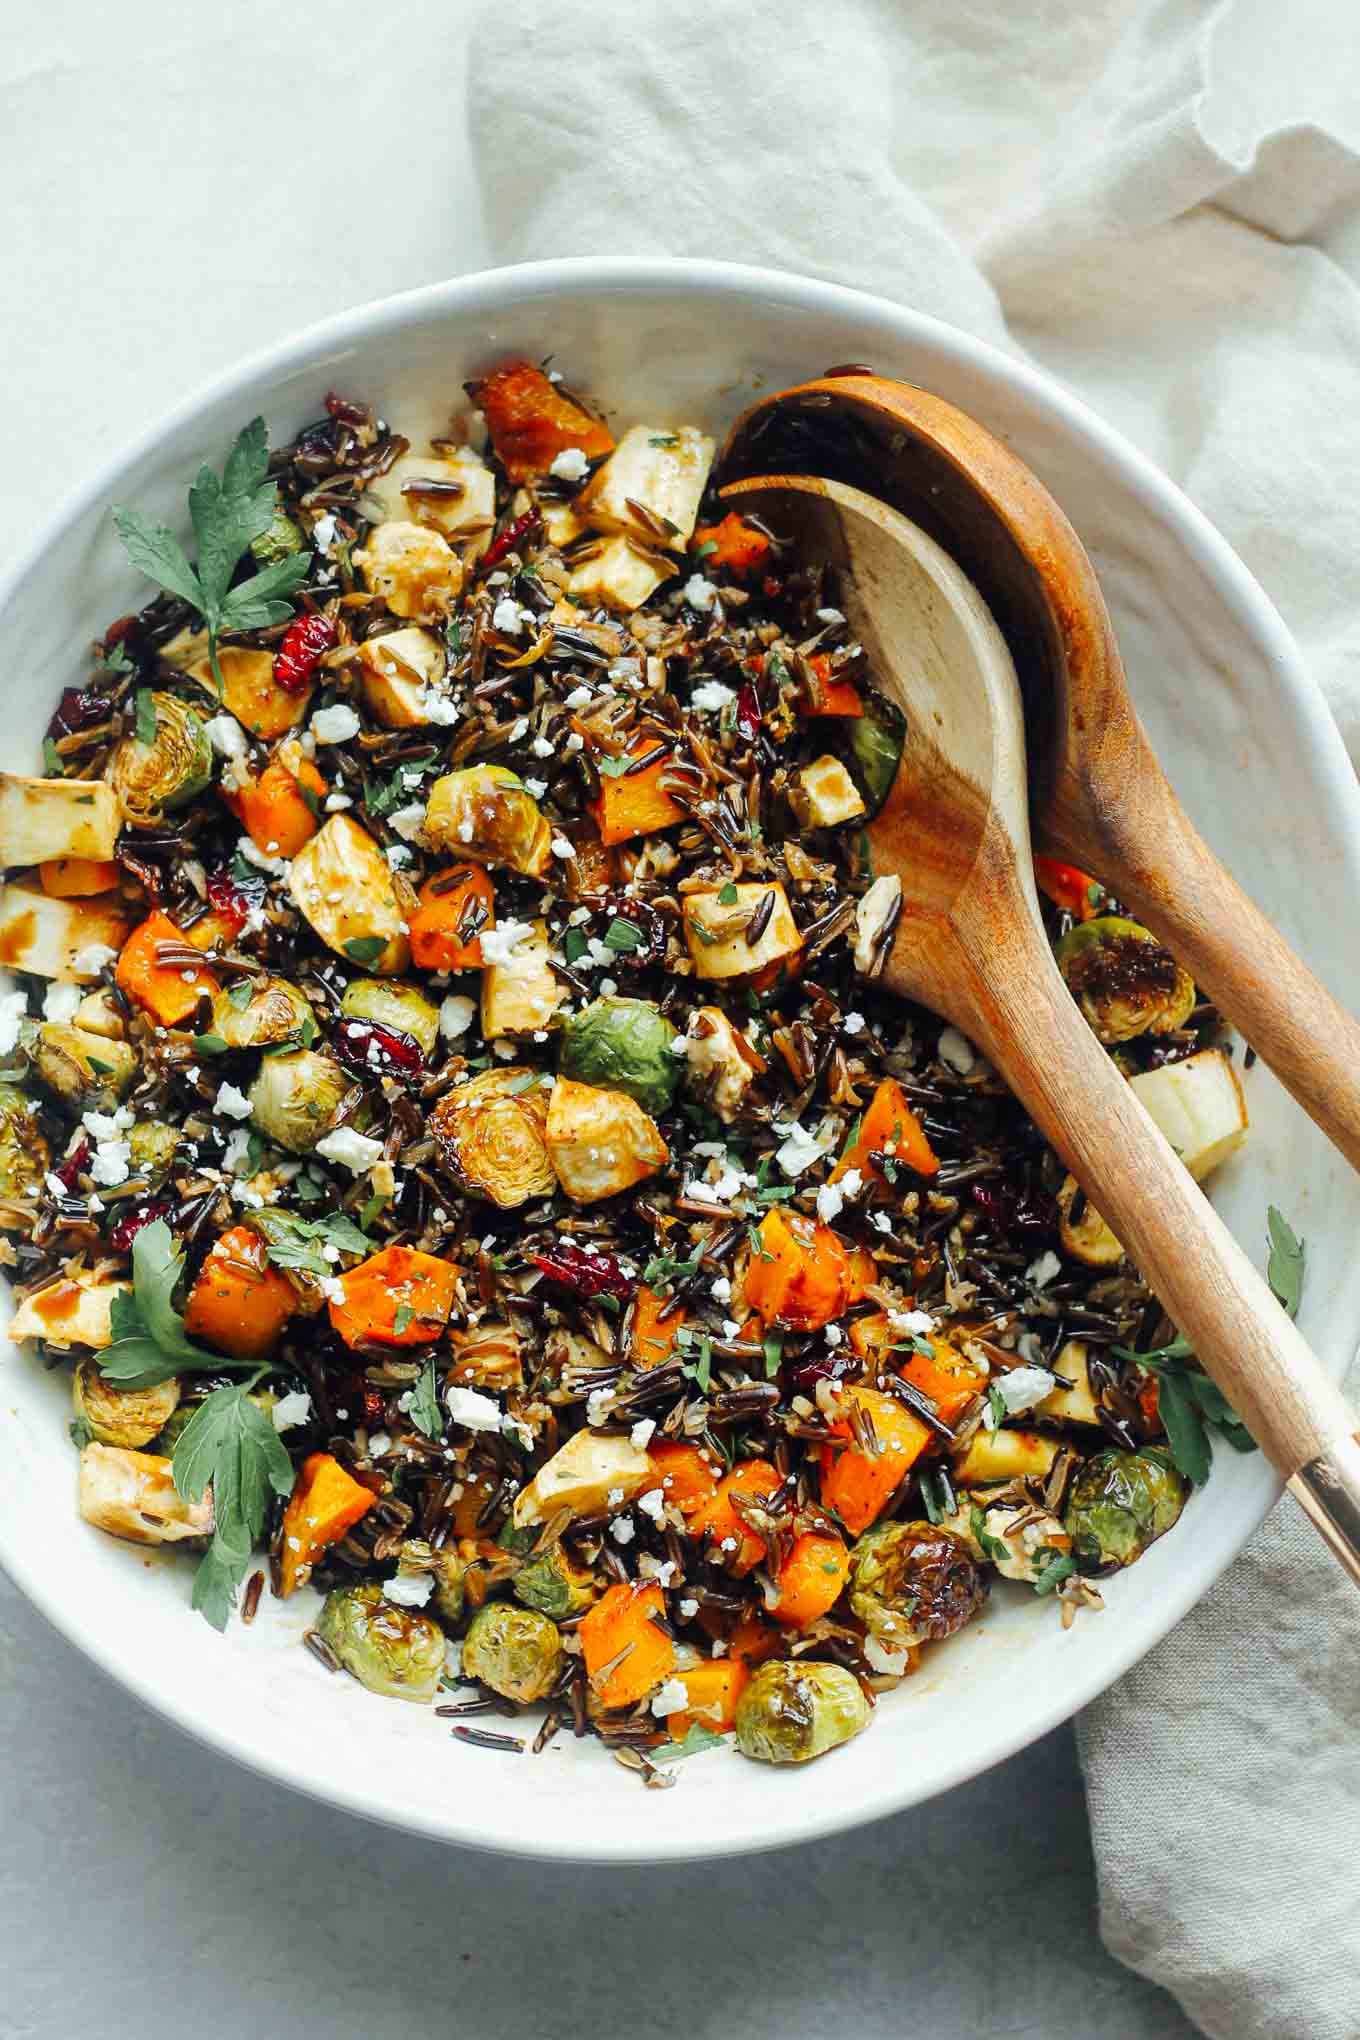 Butternut Squash, Brussels Sprouts, and Parsnip Toss with Wild Rice,  Cranberries, and Feta